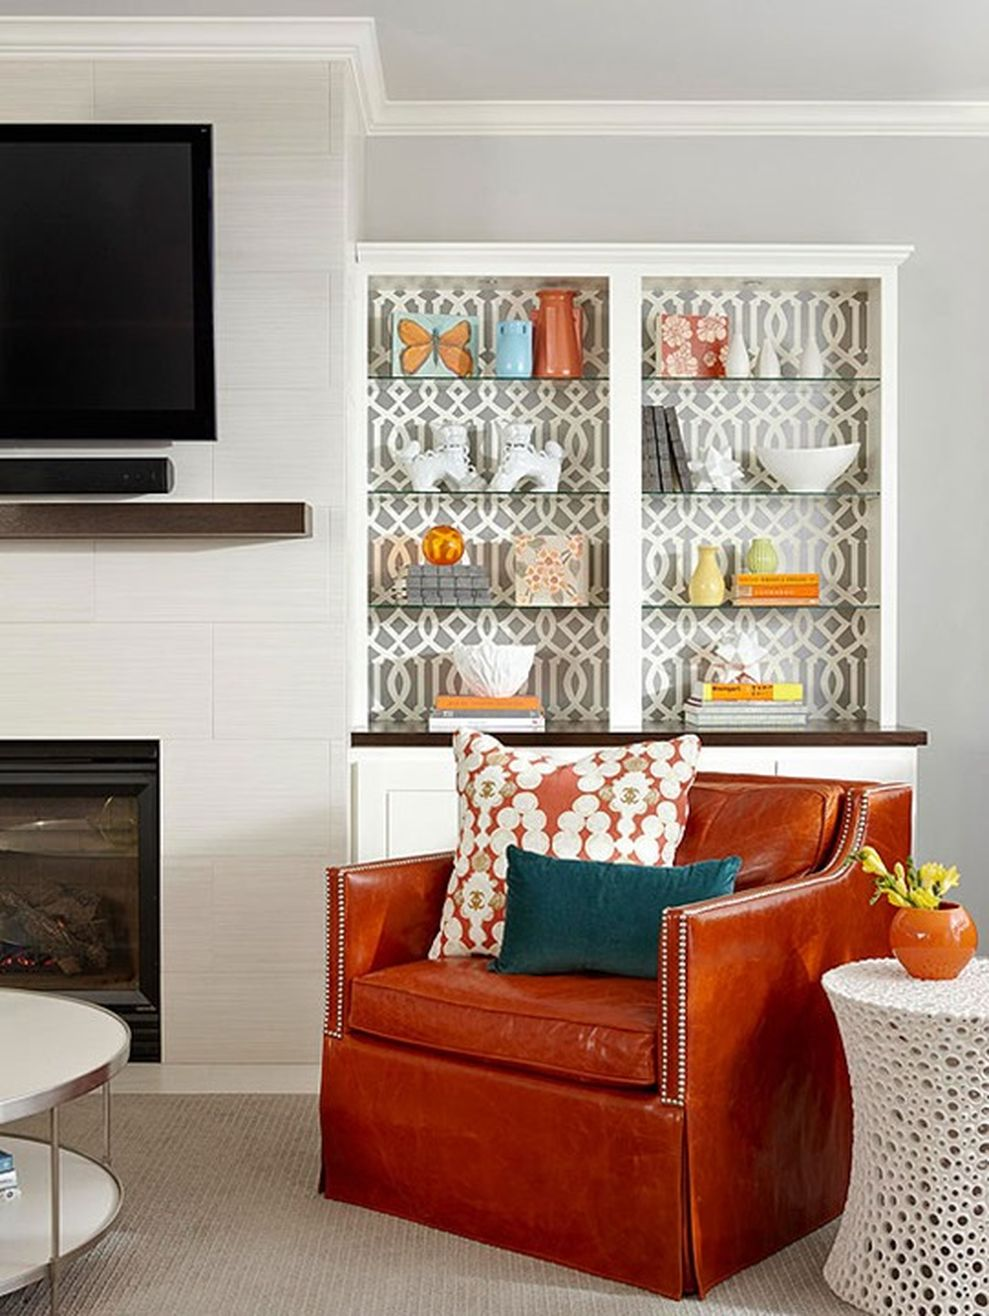 Adorable burnt orange and teal living room ideas 30 ...